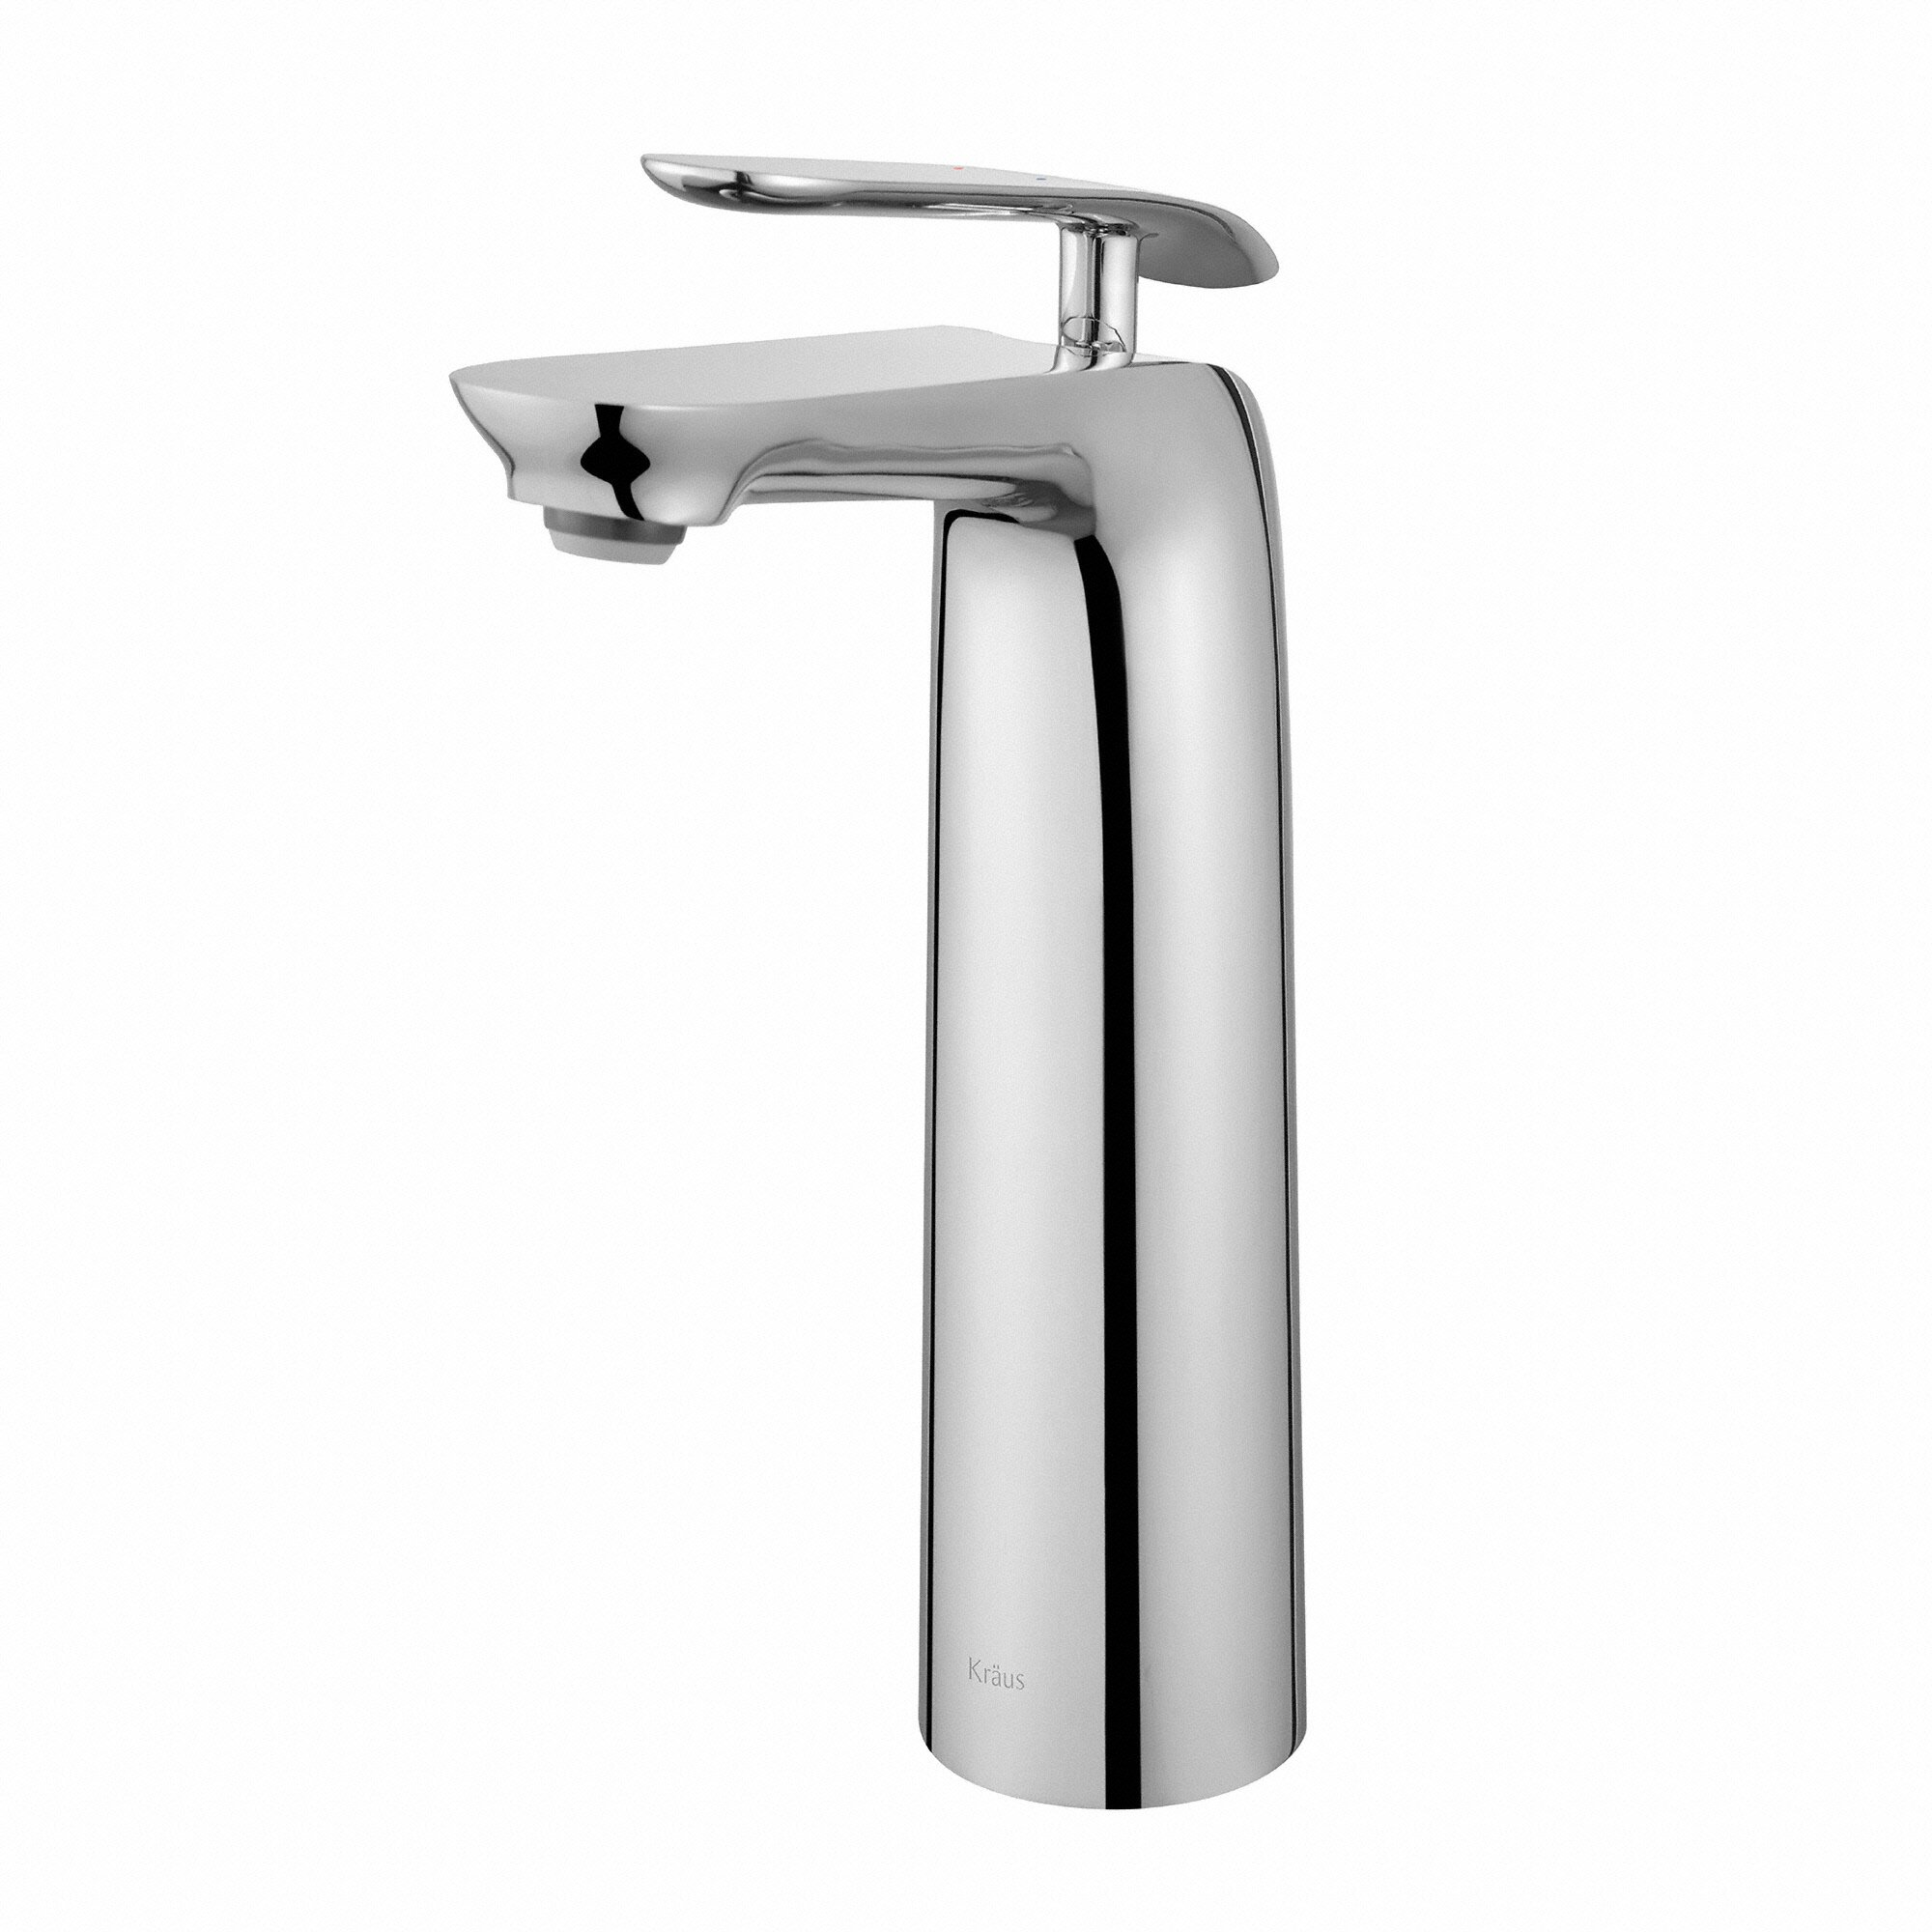 Kraus Seda Single Hole Single Handle Bathroom Faucet Reviews